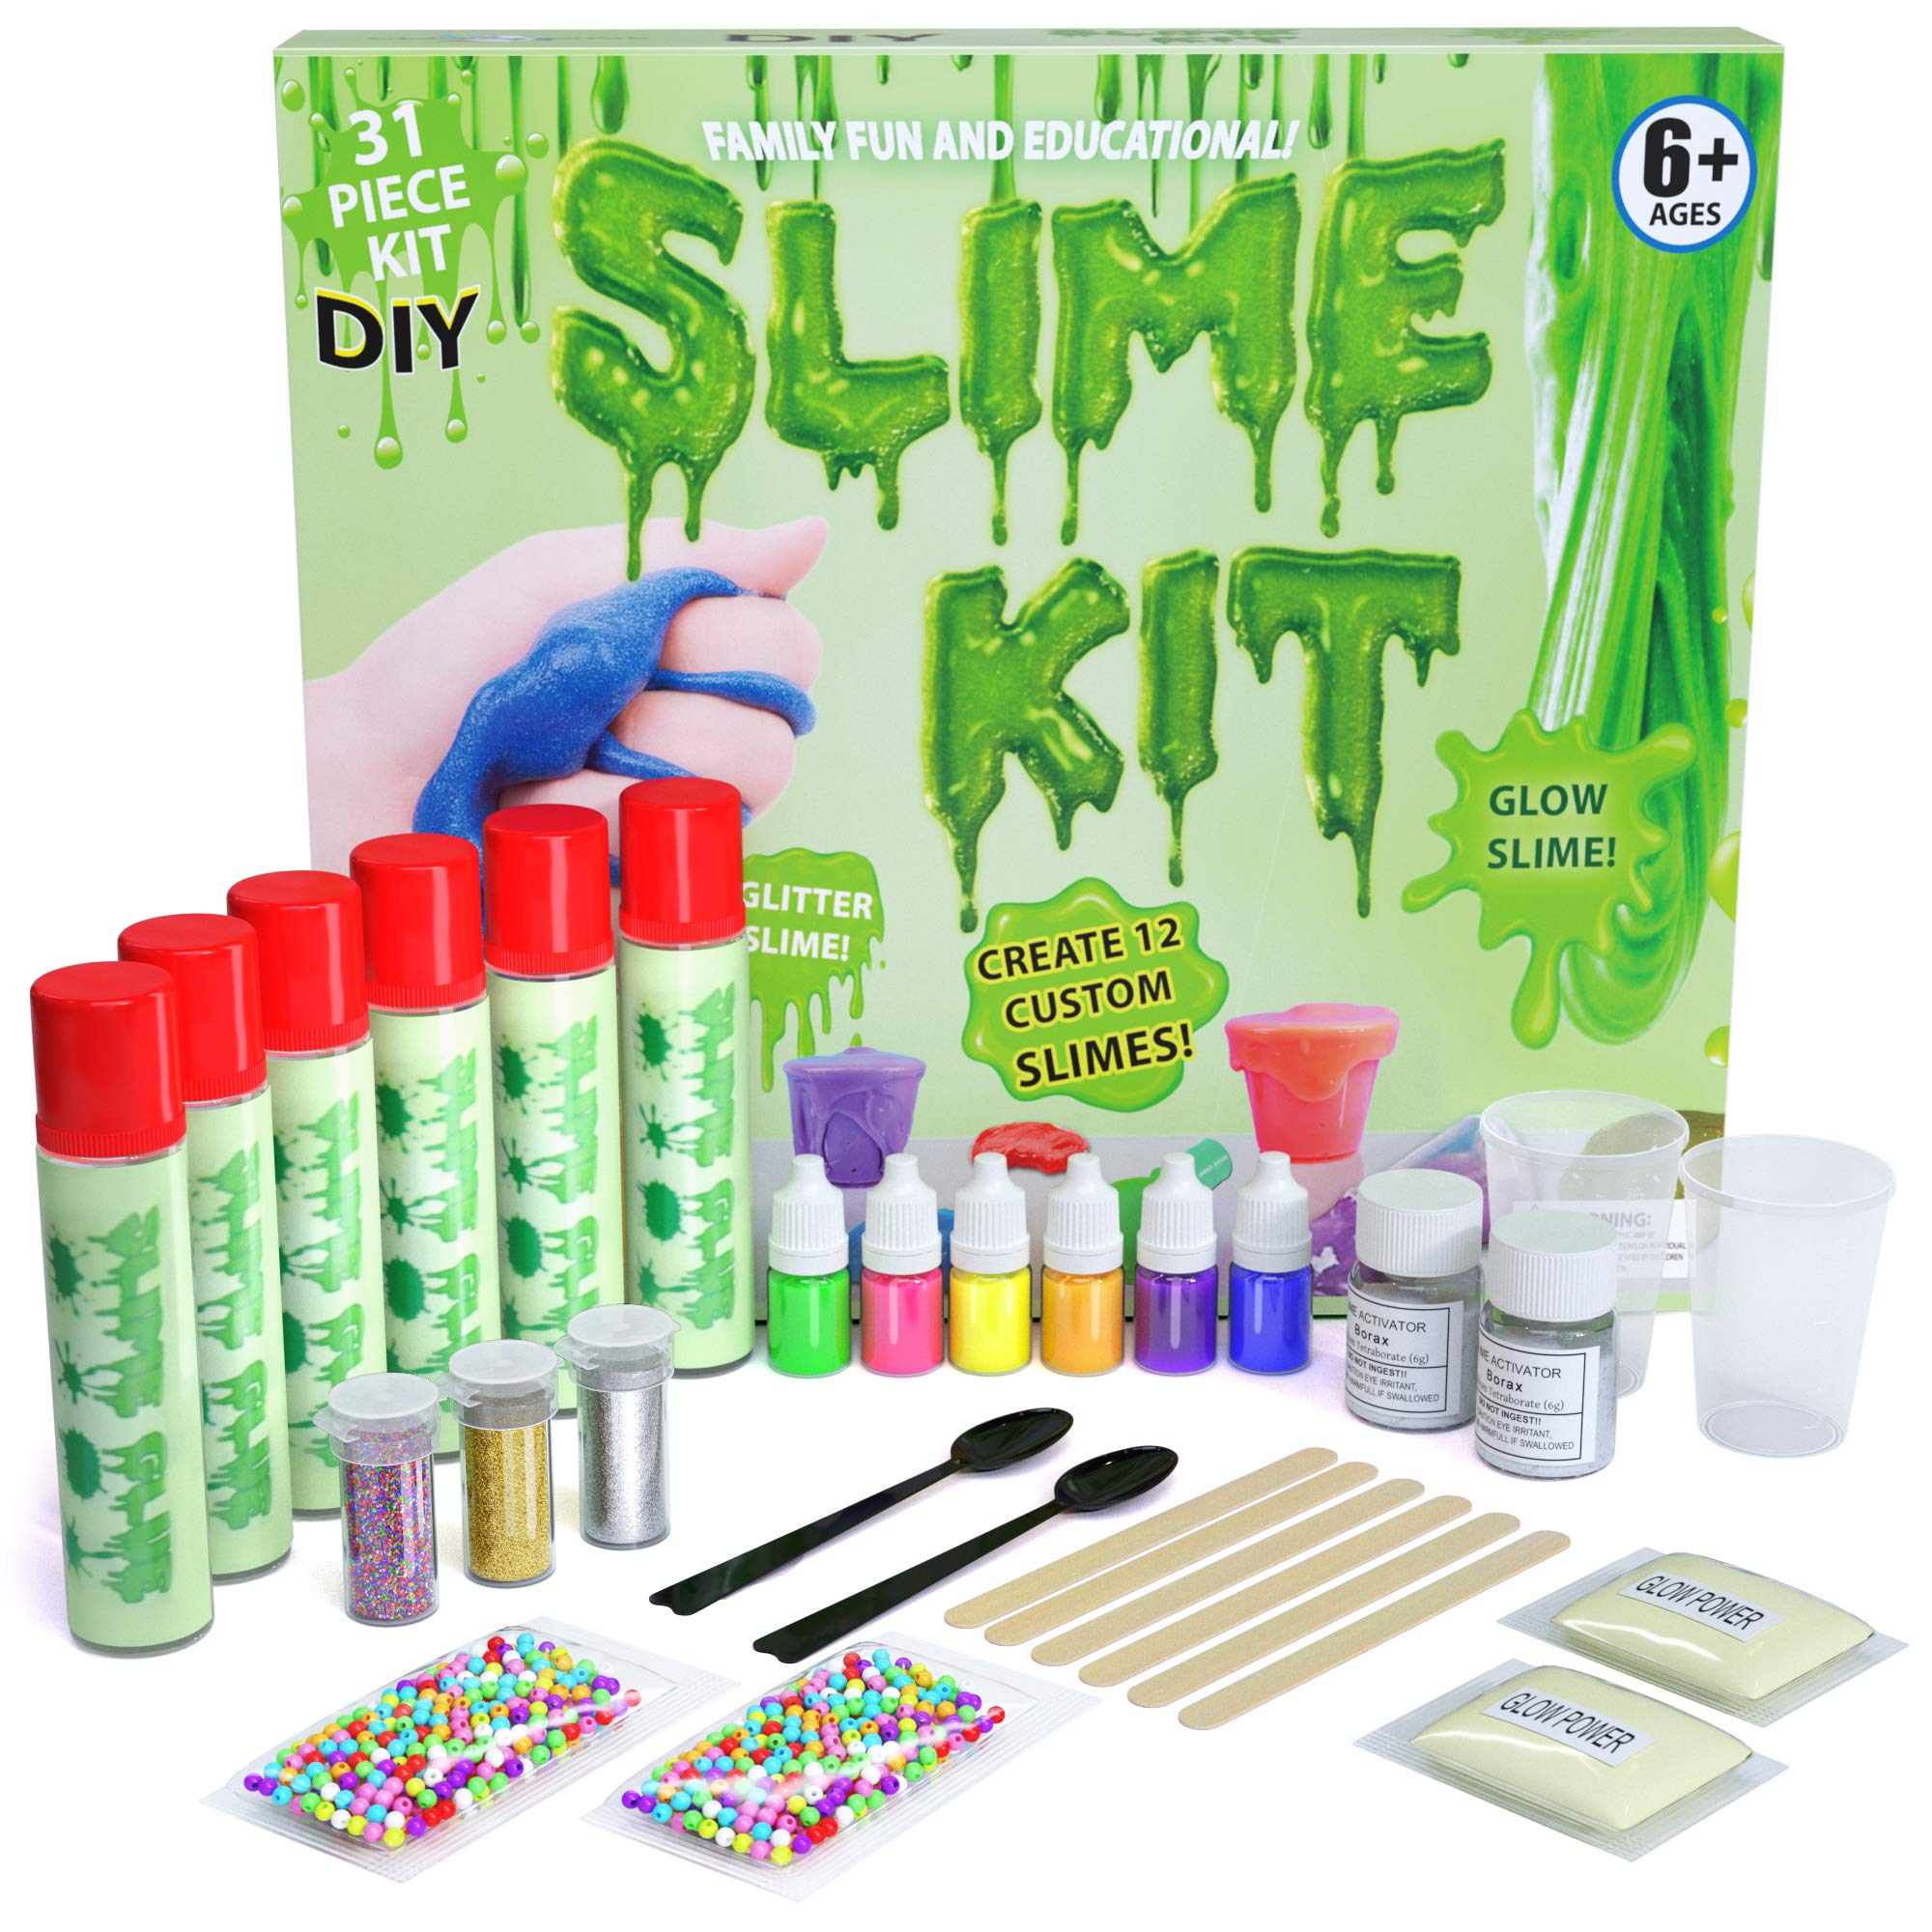 DIY Slime Kit - Ultimate 31 Piece Slime kit for Girls & Boys - Make 12 Custom batches of Clear, Color, Glitter, Bead, Glow Slime & More - #1 Fun & Educational DIY Slime - Slime Making Kit!